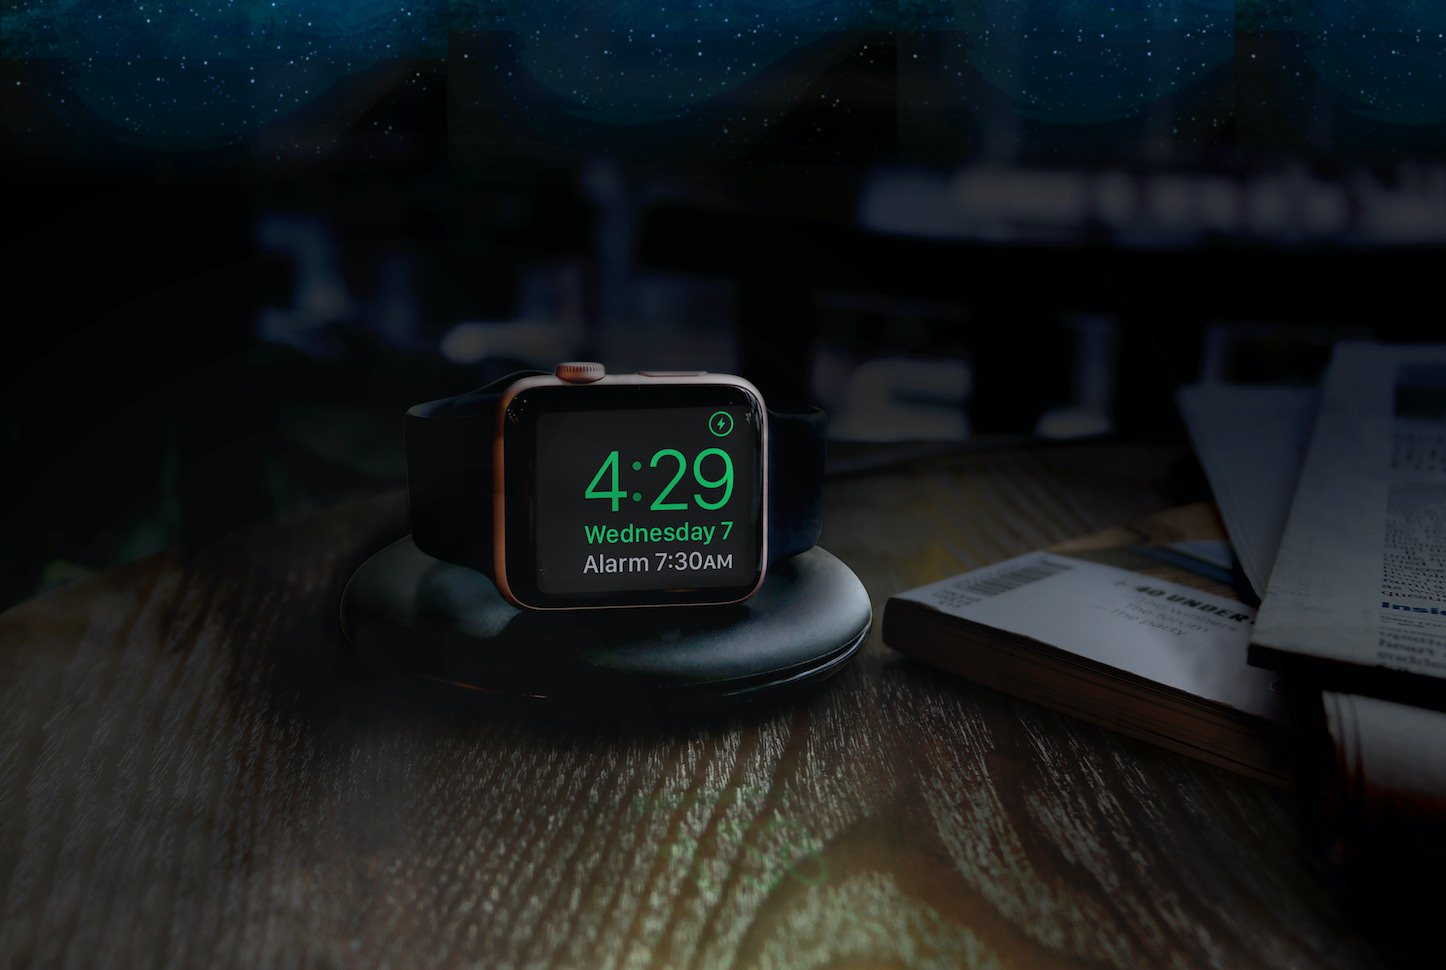 Belkin-Travel-Stand-for-Apple-Watch-01.jpg